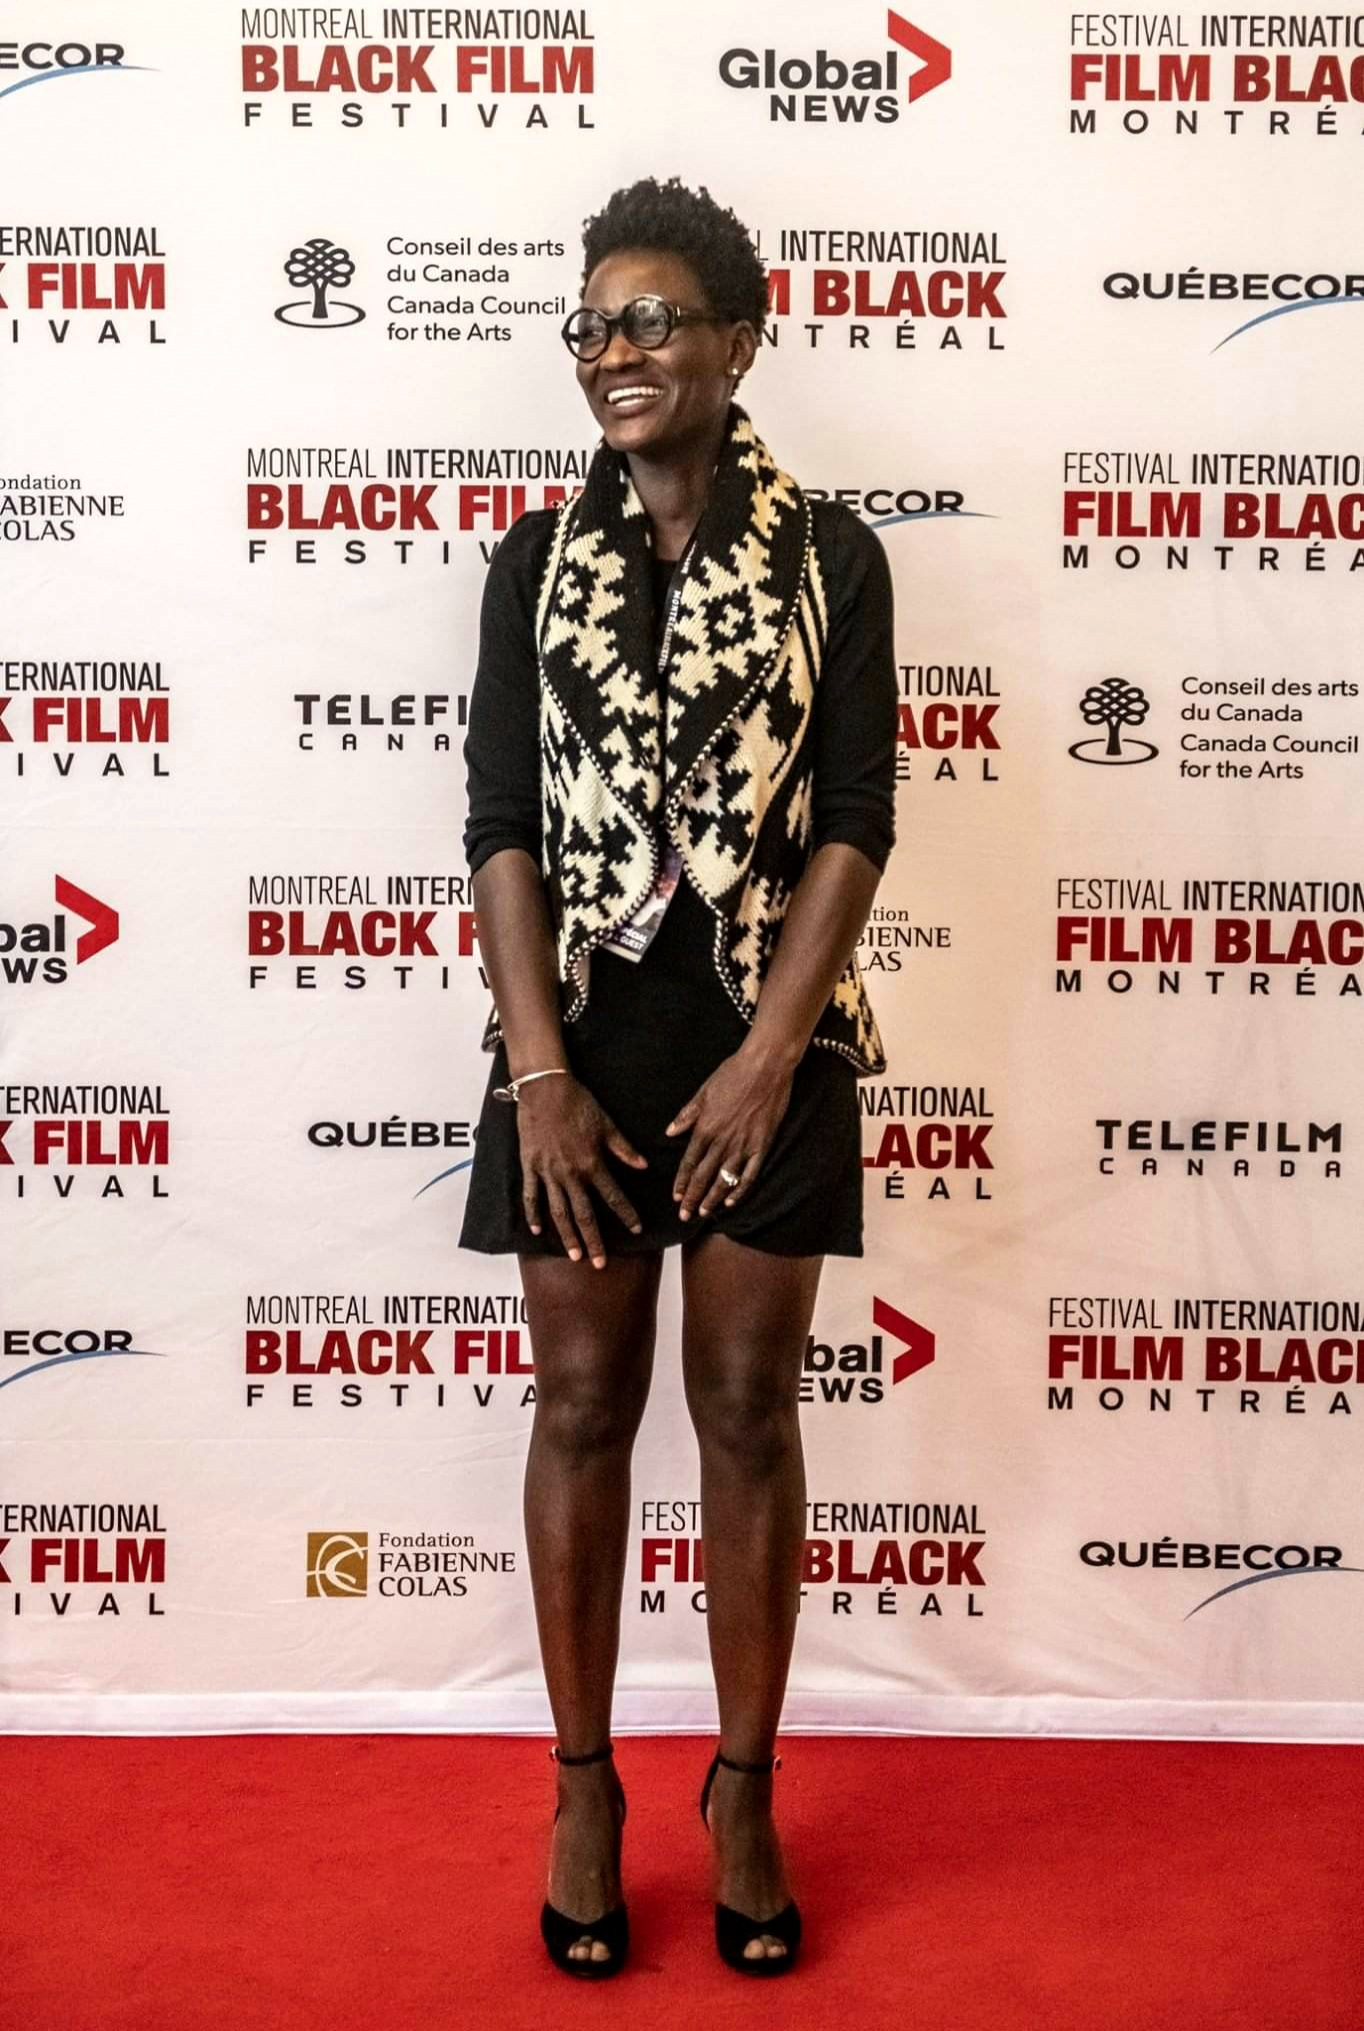 At the Montreal Black Film Festival